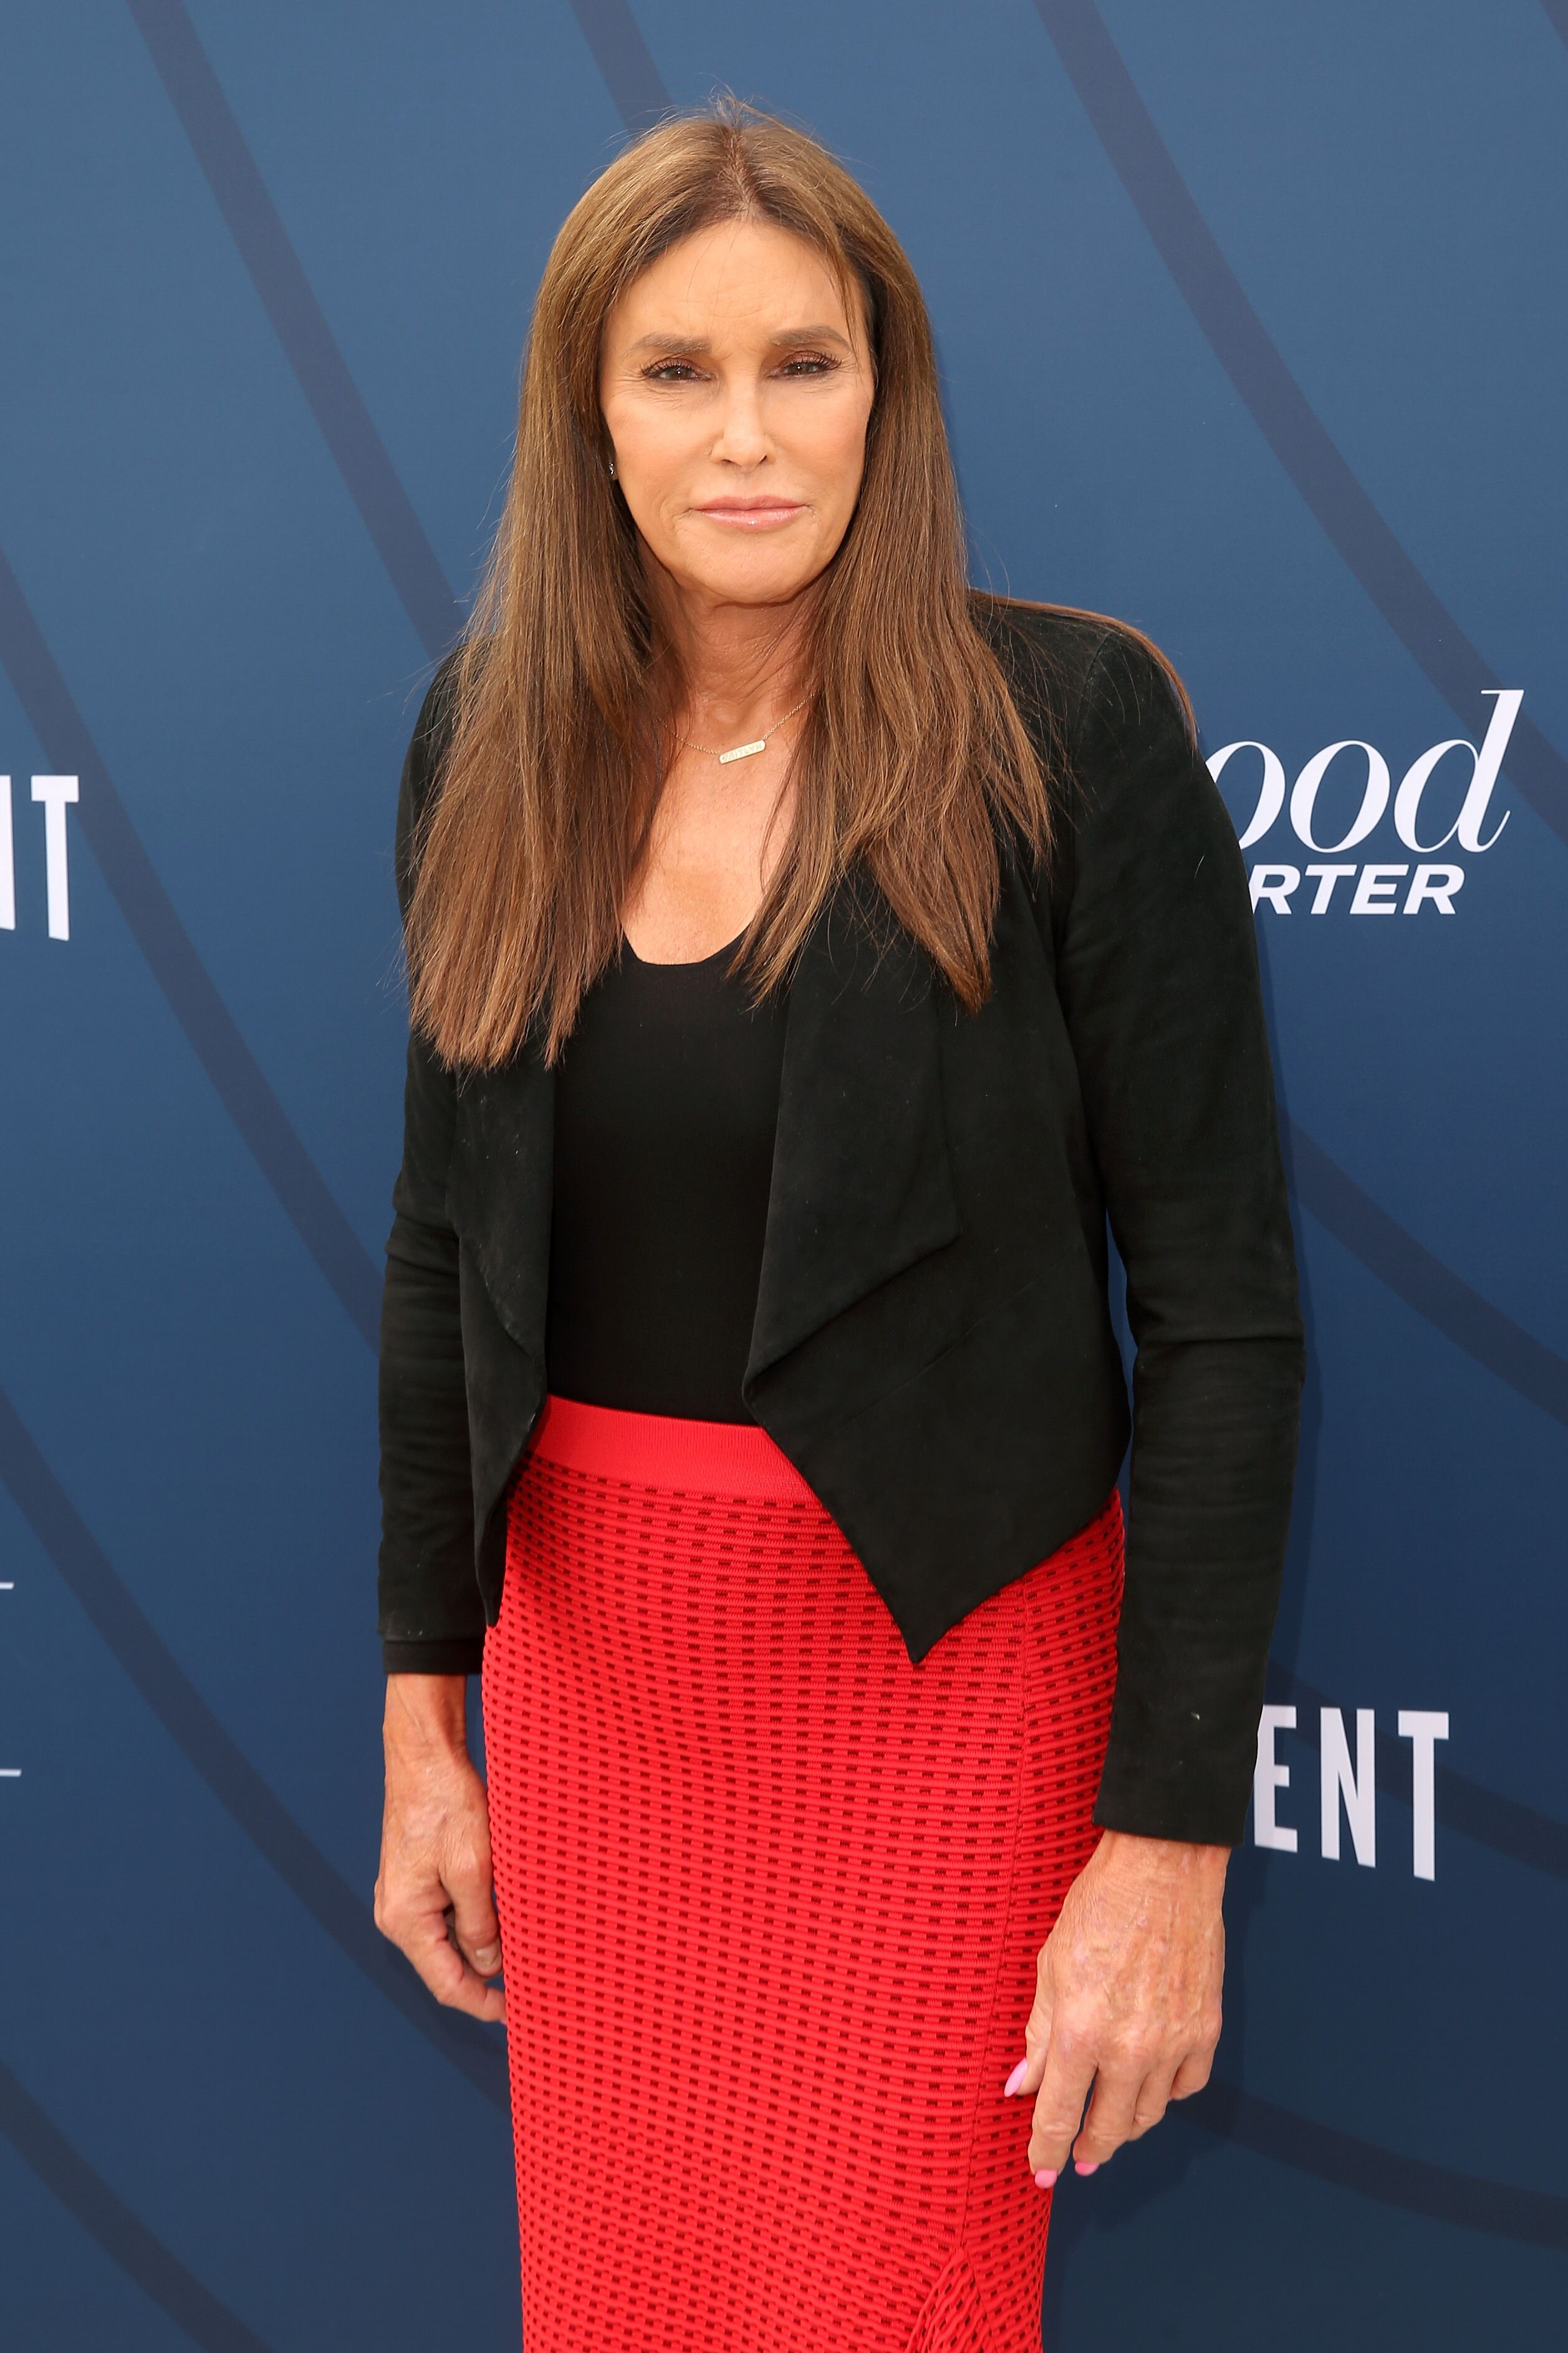 Caitlyn Jenner au Hollywood Reporter's Empowerment In Entertainment Event 2019 le 30 avril 2019 à Los Angeles, Californie | Photo : Getty Images